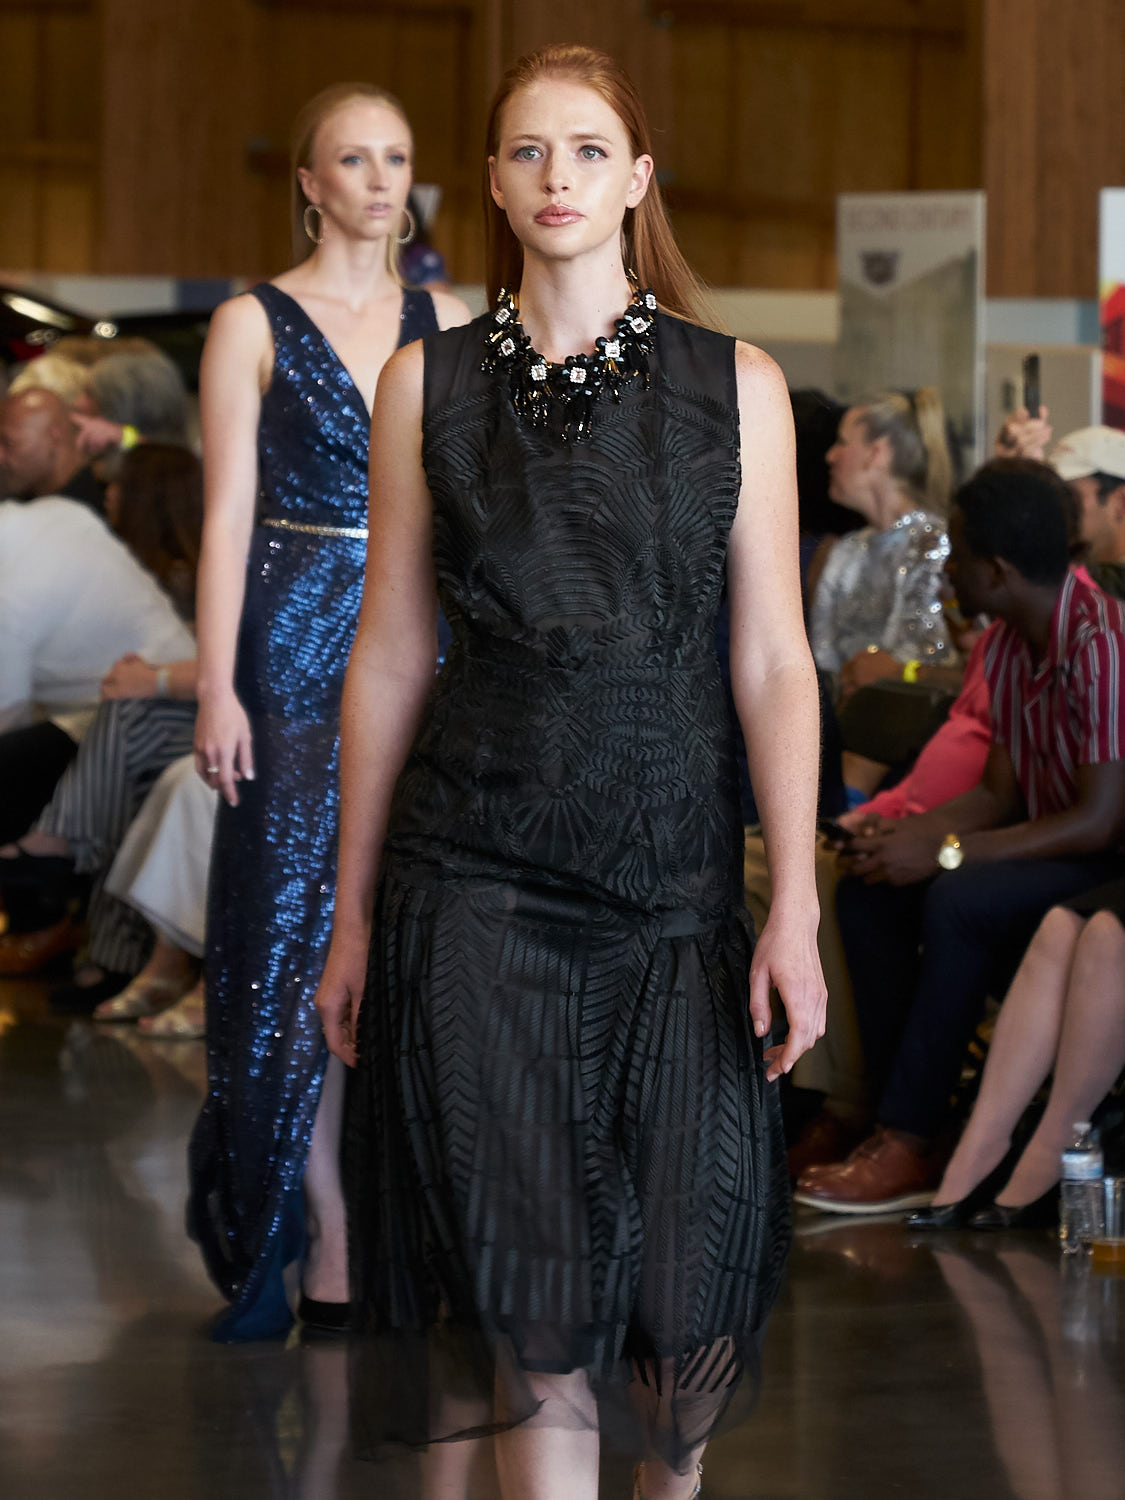 AMVISUALS-Couture-Cars-Fashion-Show-LeMay-Museum-Tacoma-Fashion-2.jpg